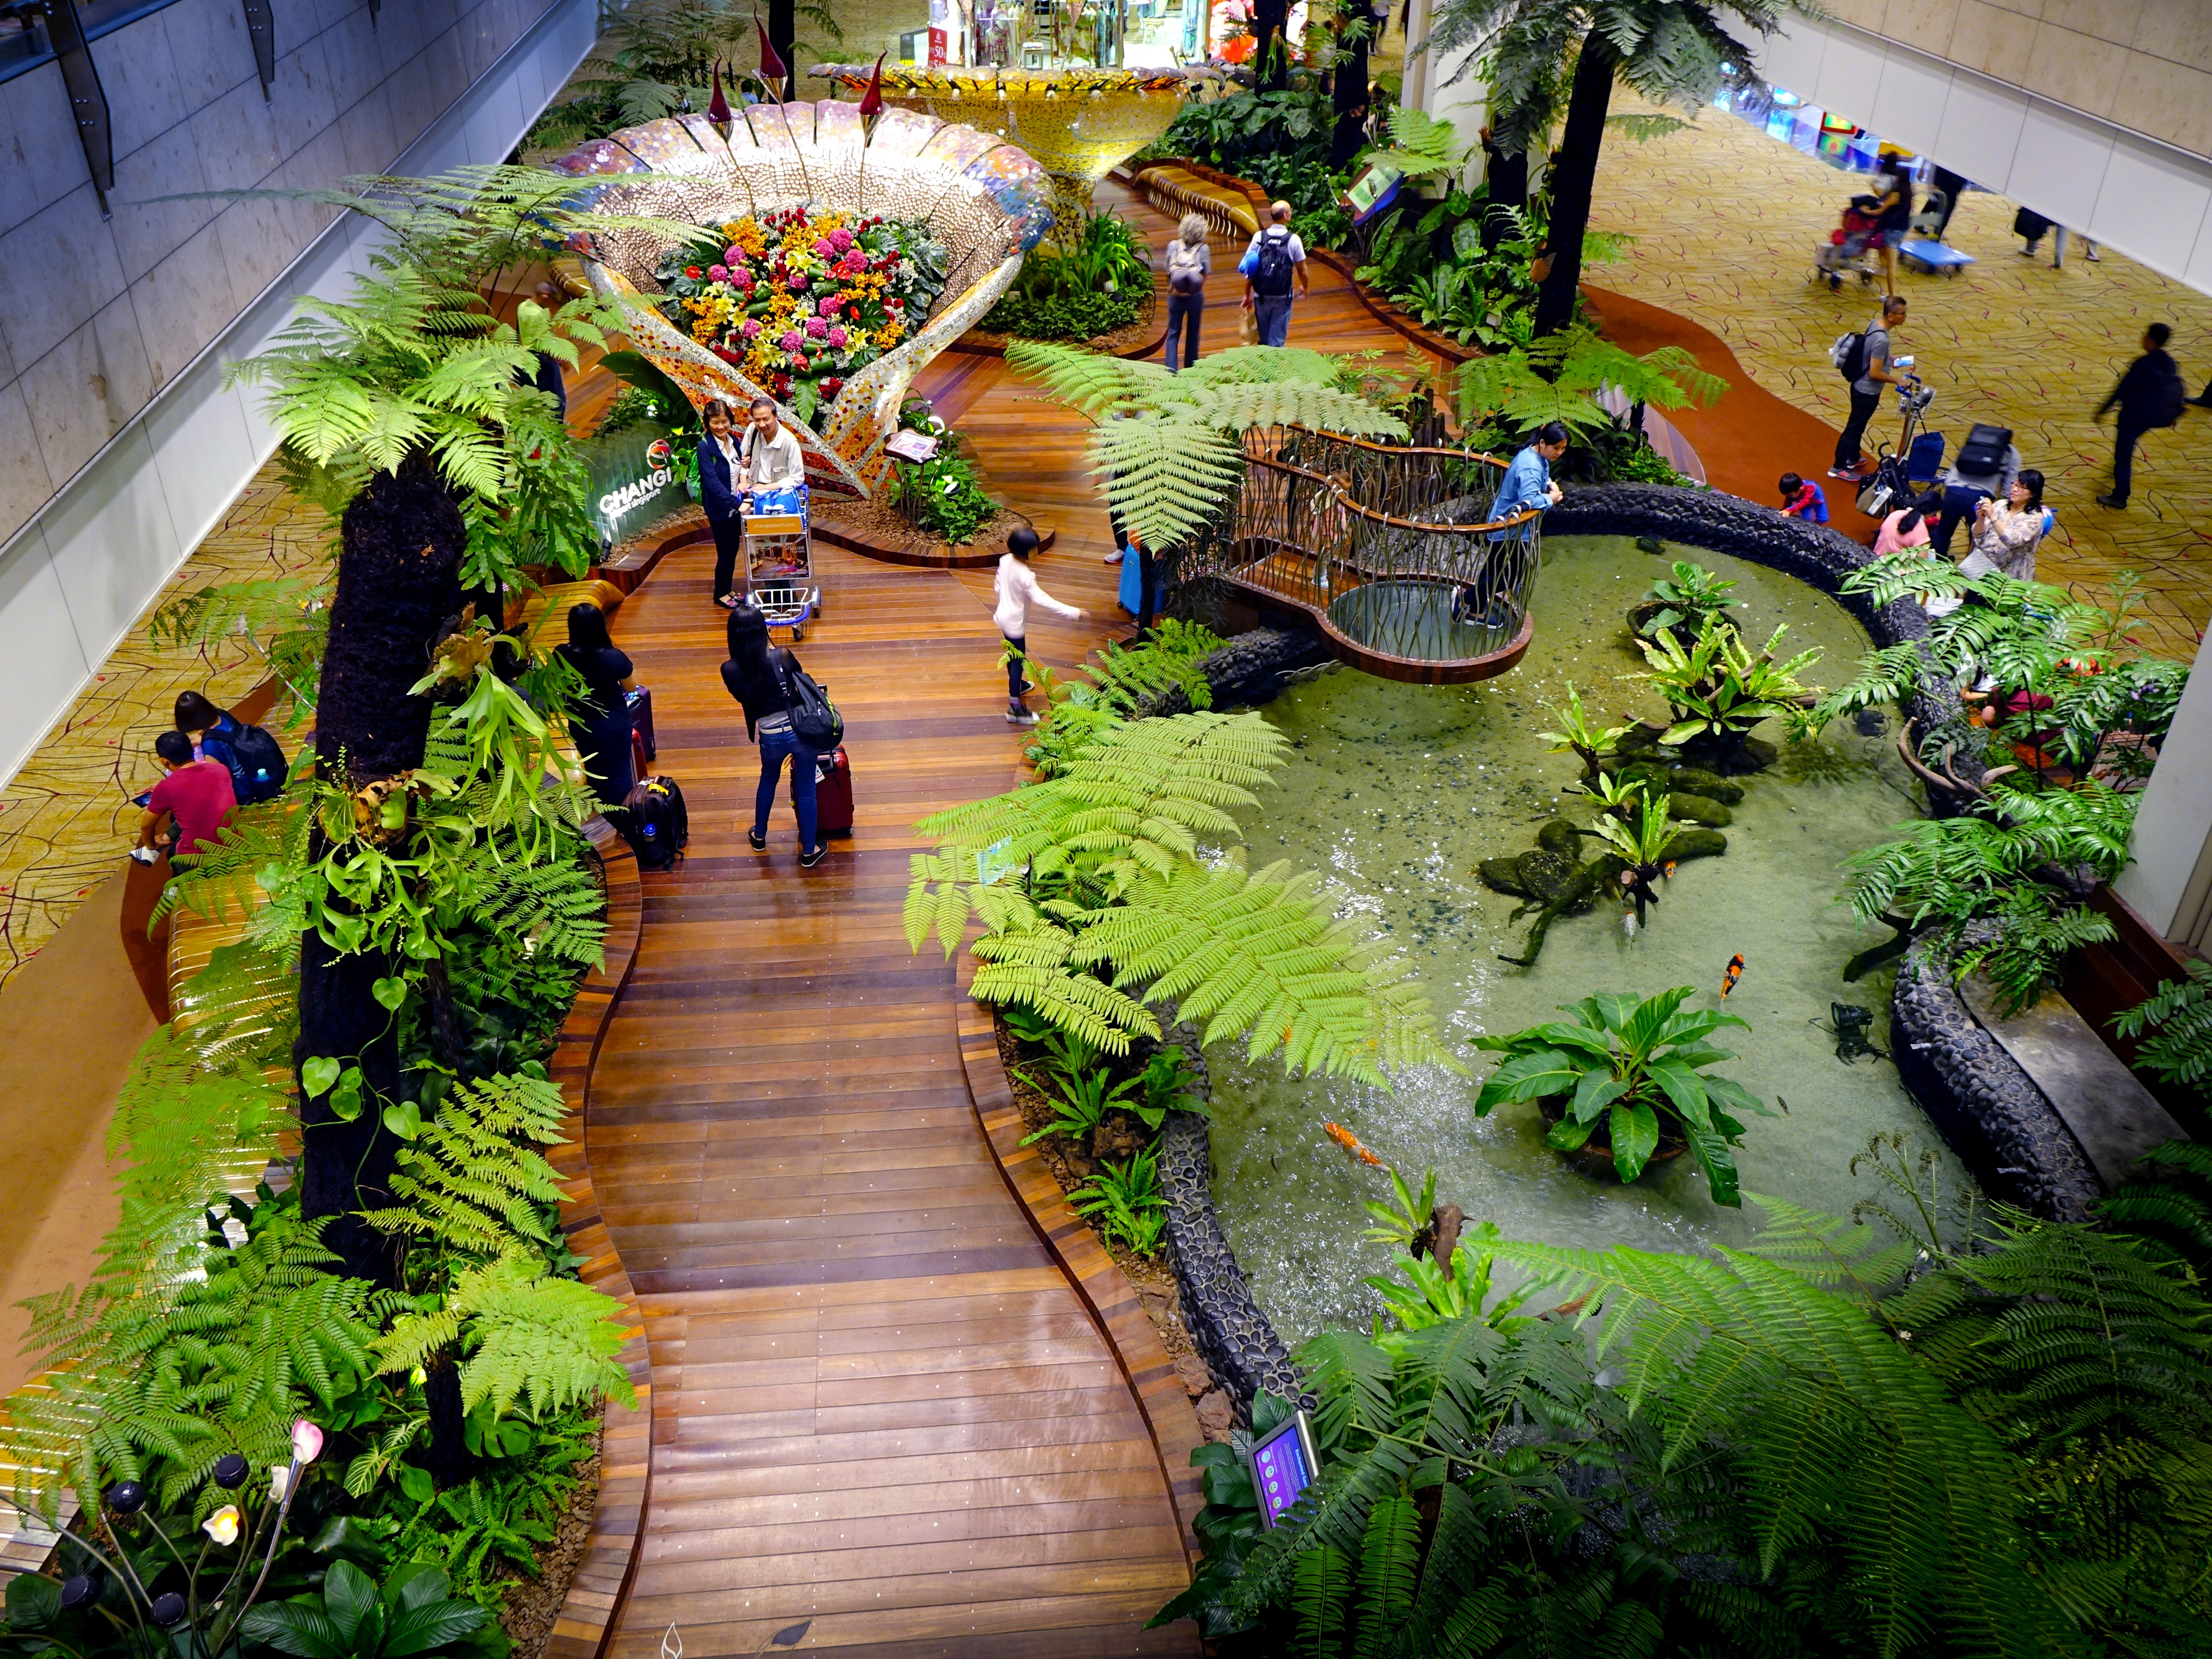 The World's Best Airport Just Installed The World's Biggest Indoor Waterfall